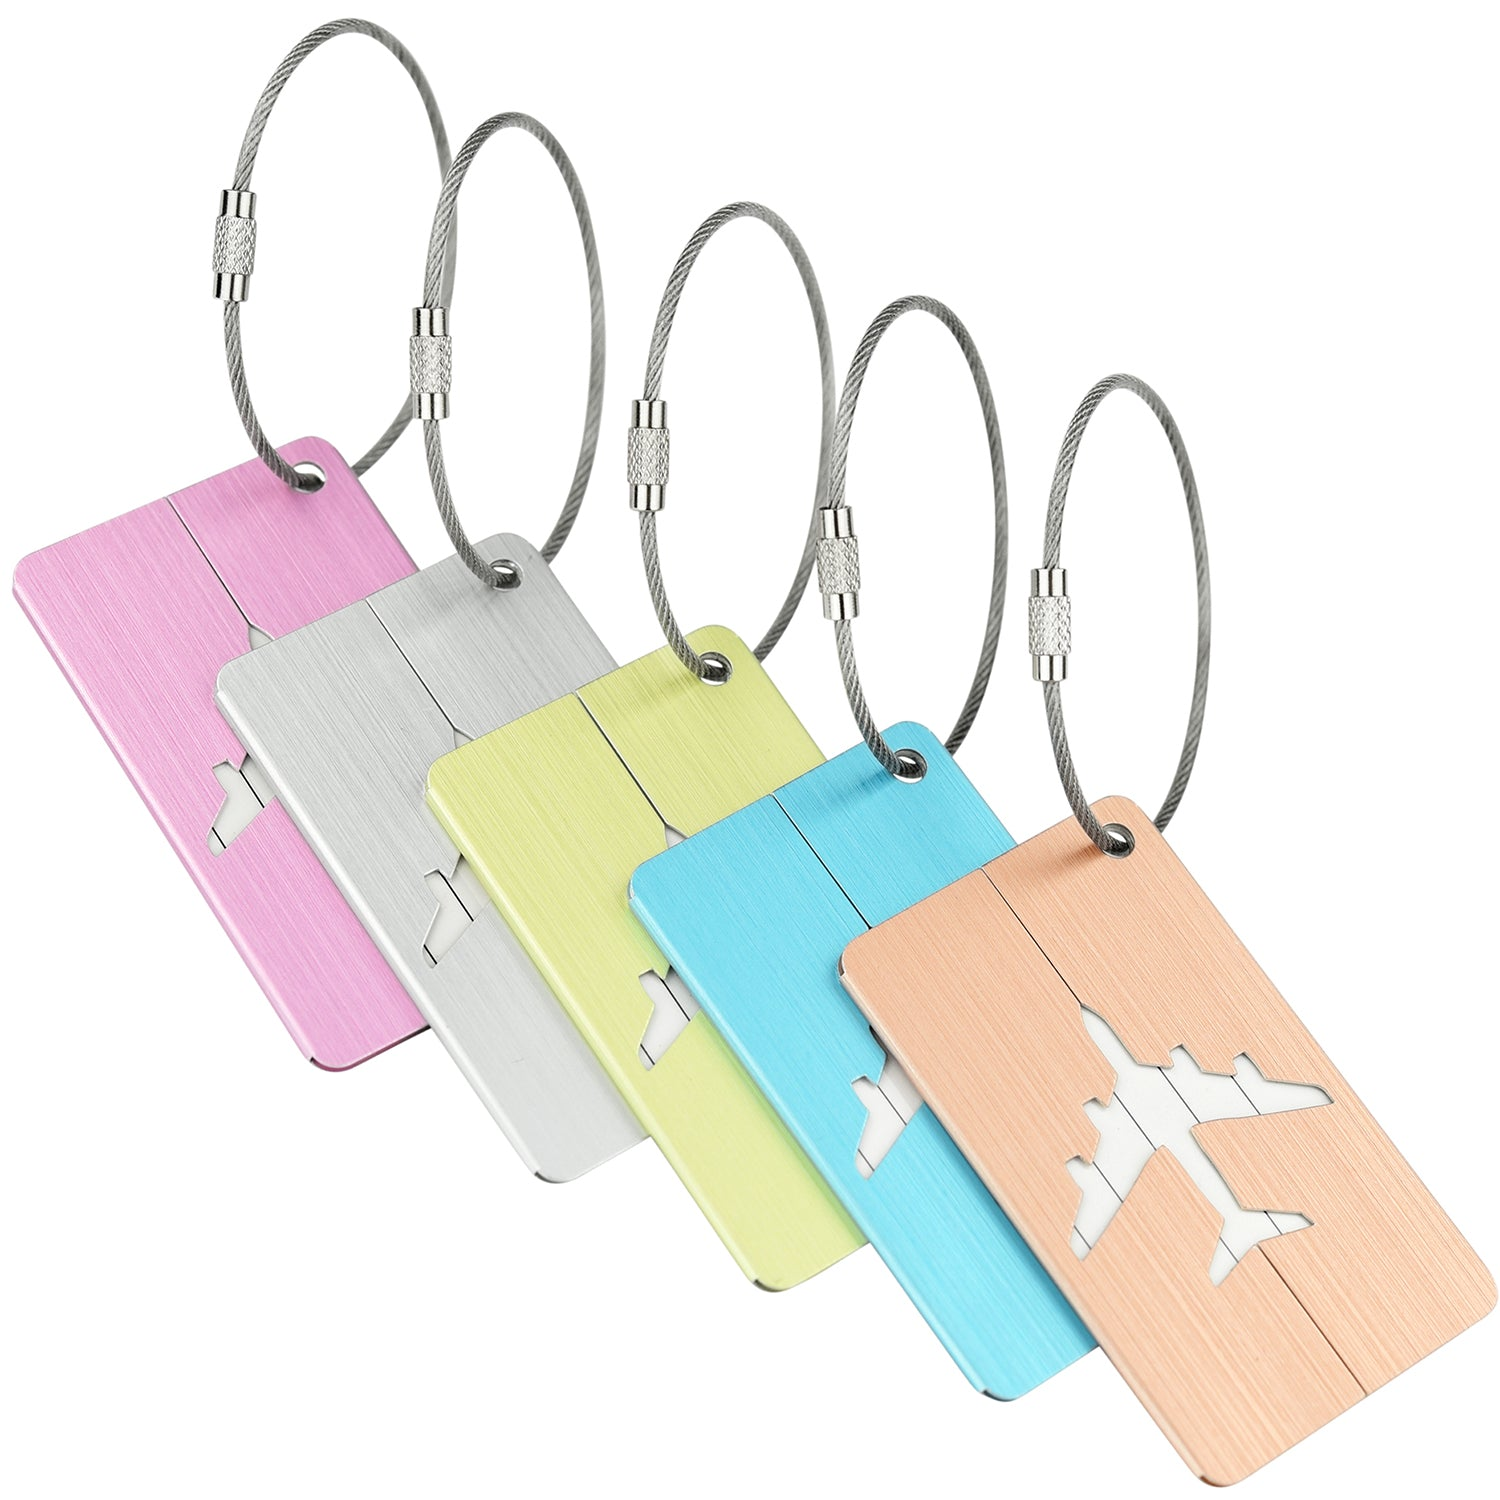 5 Mixed Color Hollow Airplane Pattern Aluminum Luggage Tags